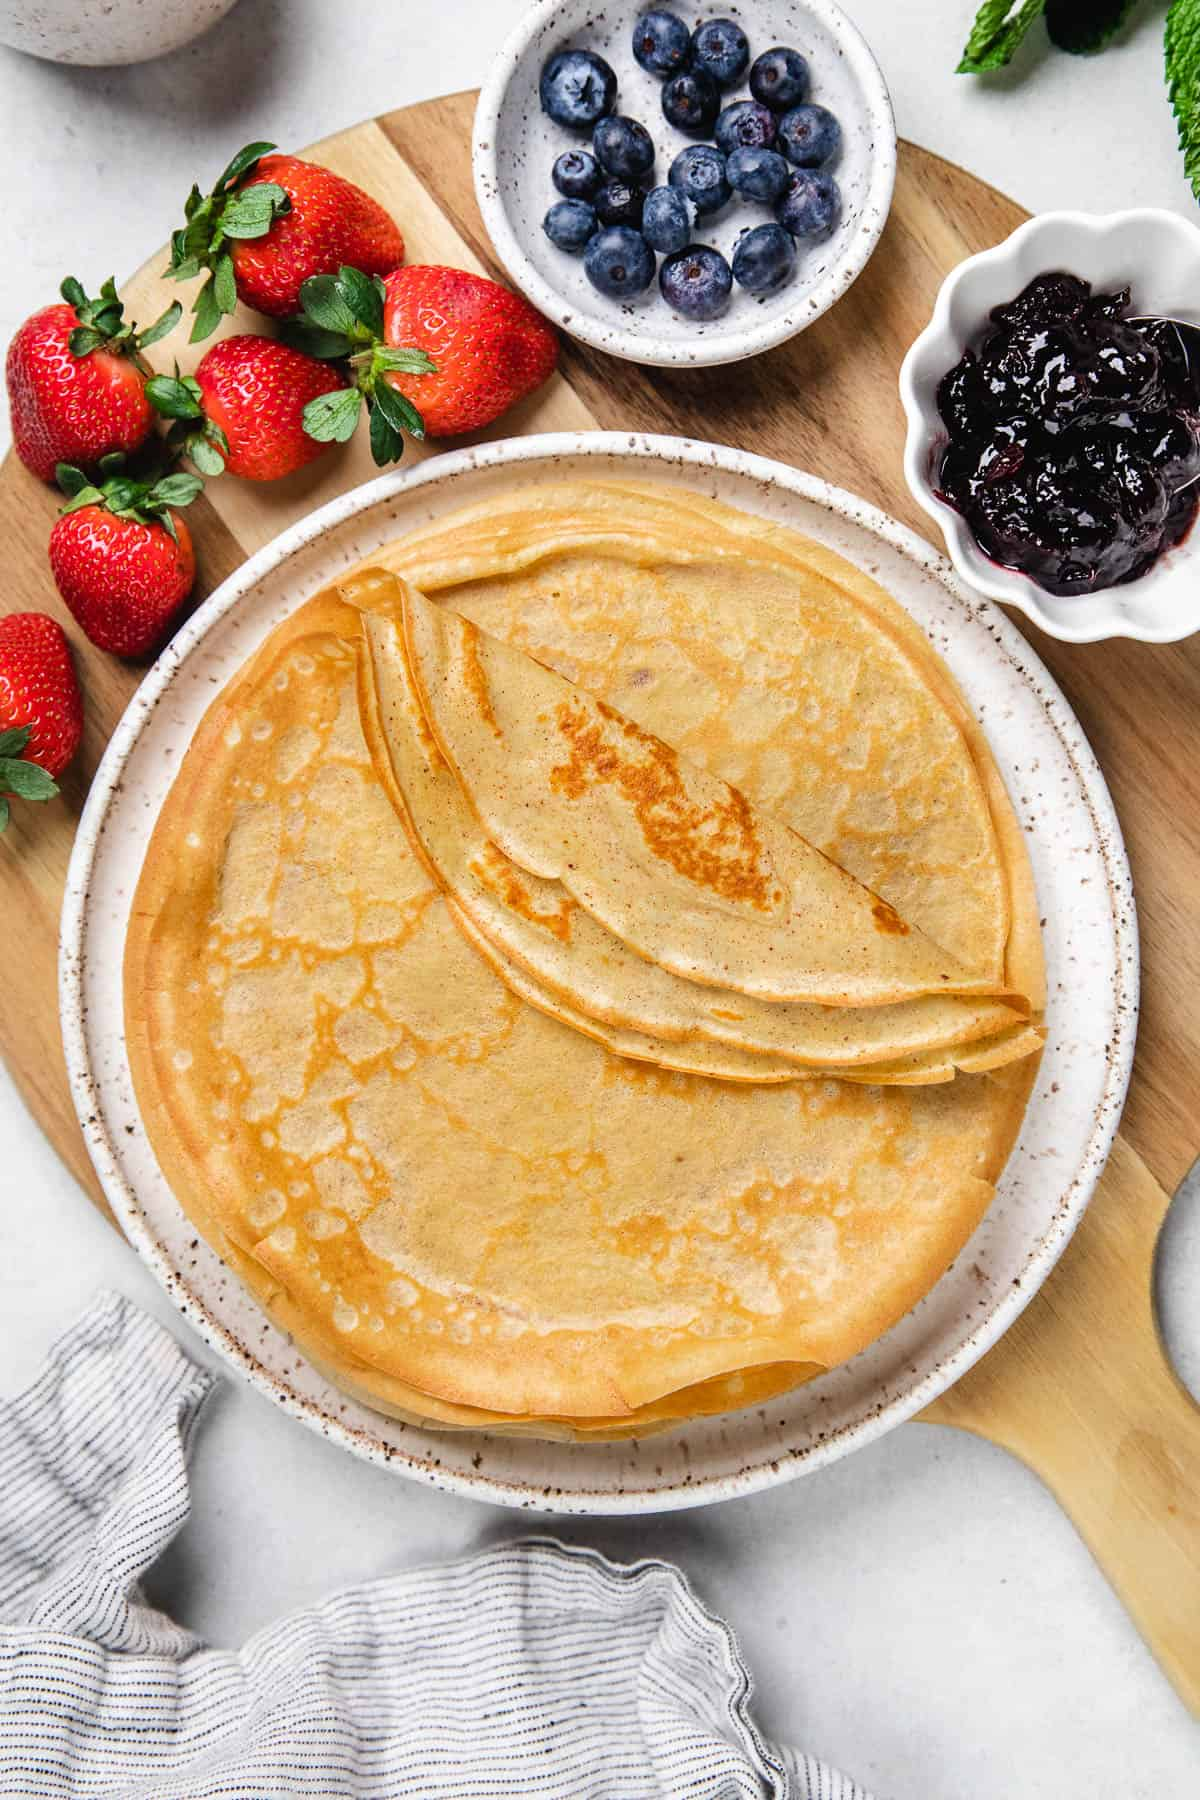 Crepes on a plate with berries and jam.